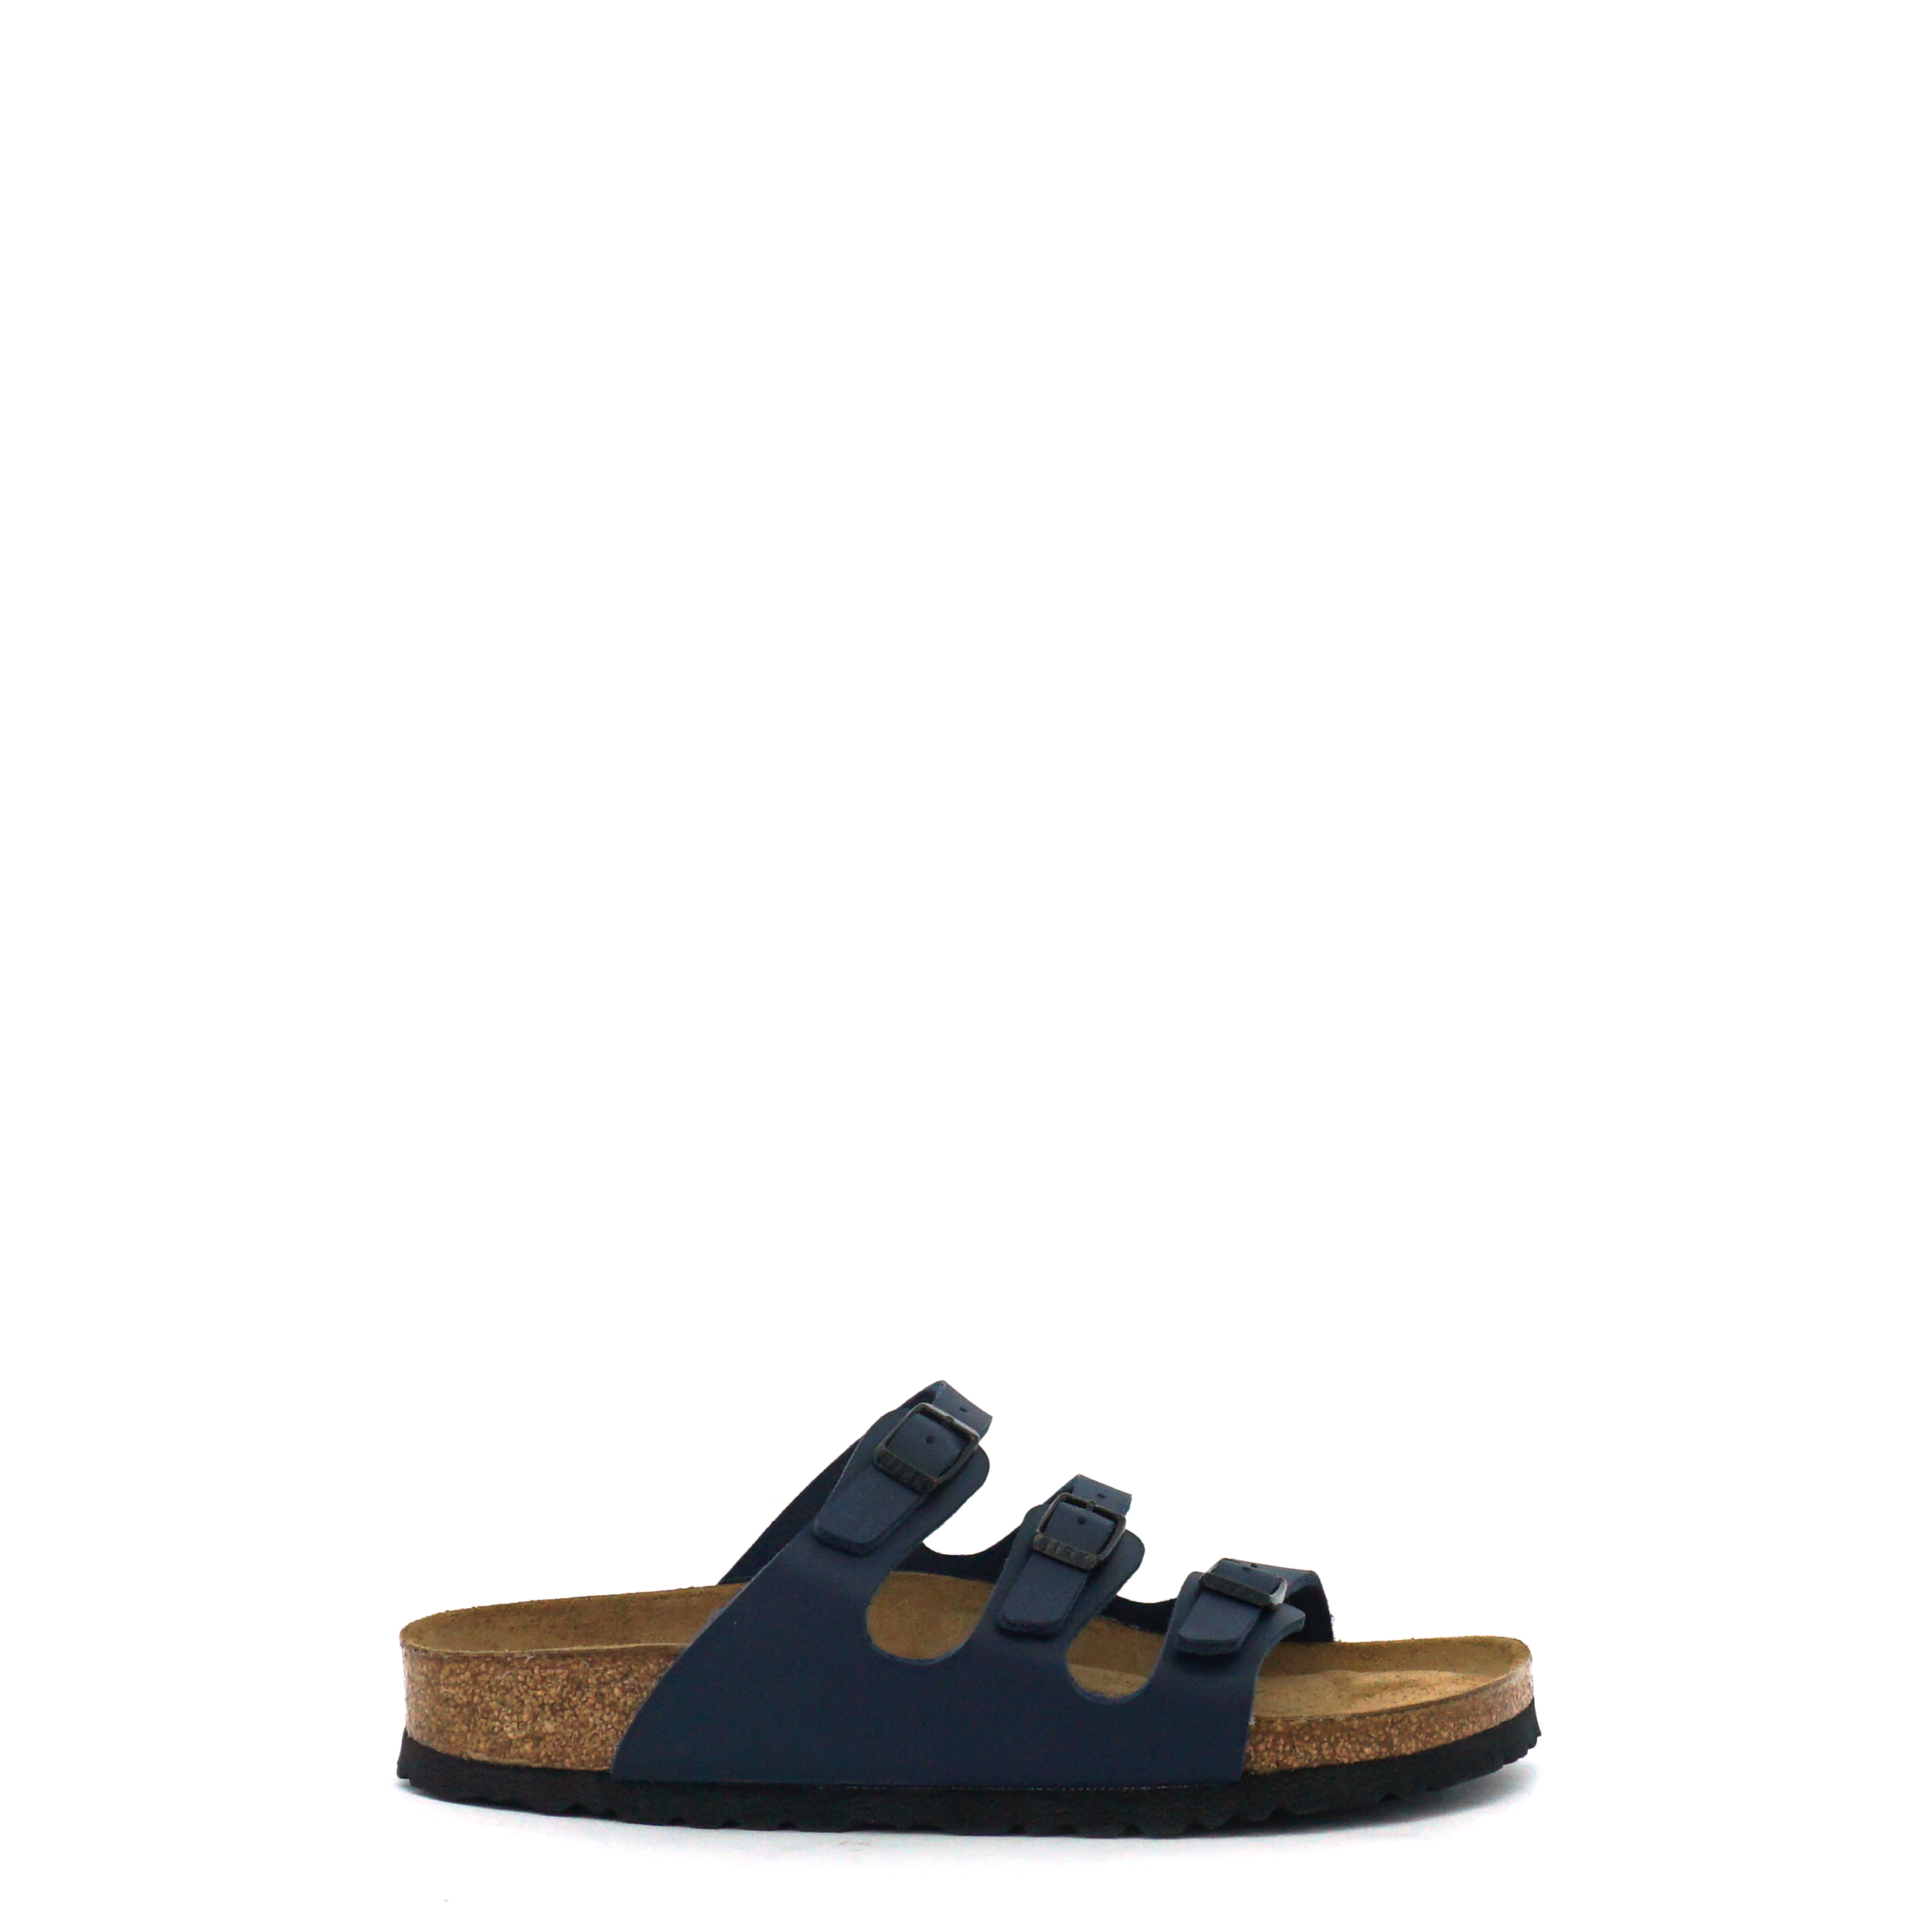 Birkenstock Florida Blue Regular slipper dames